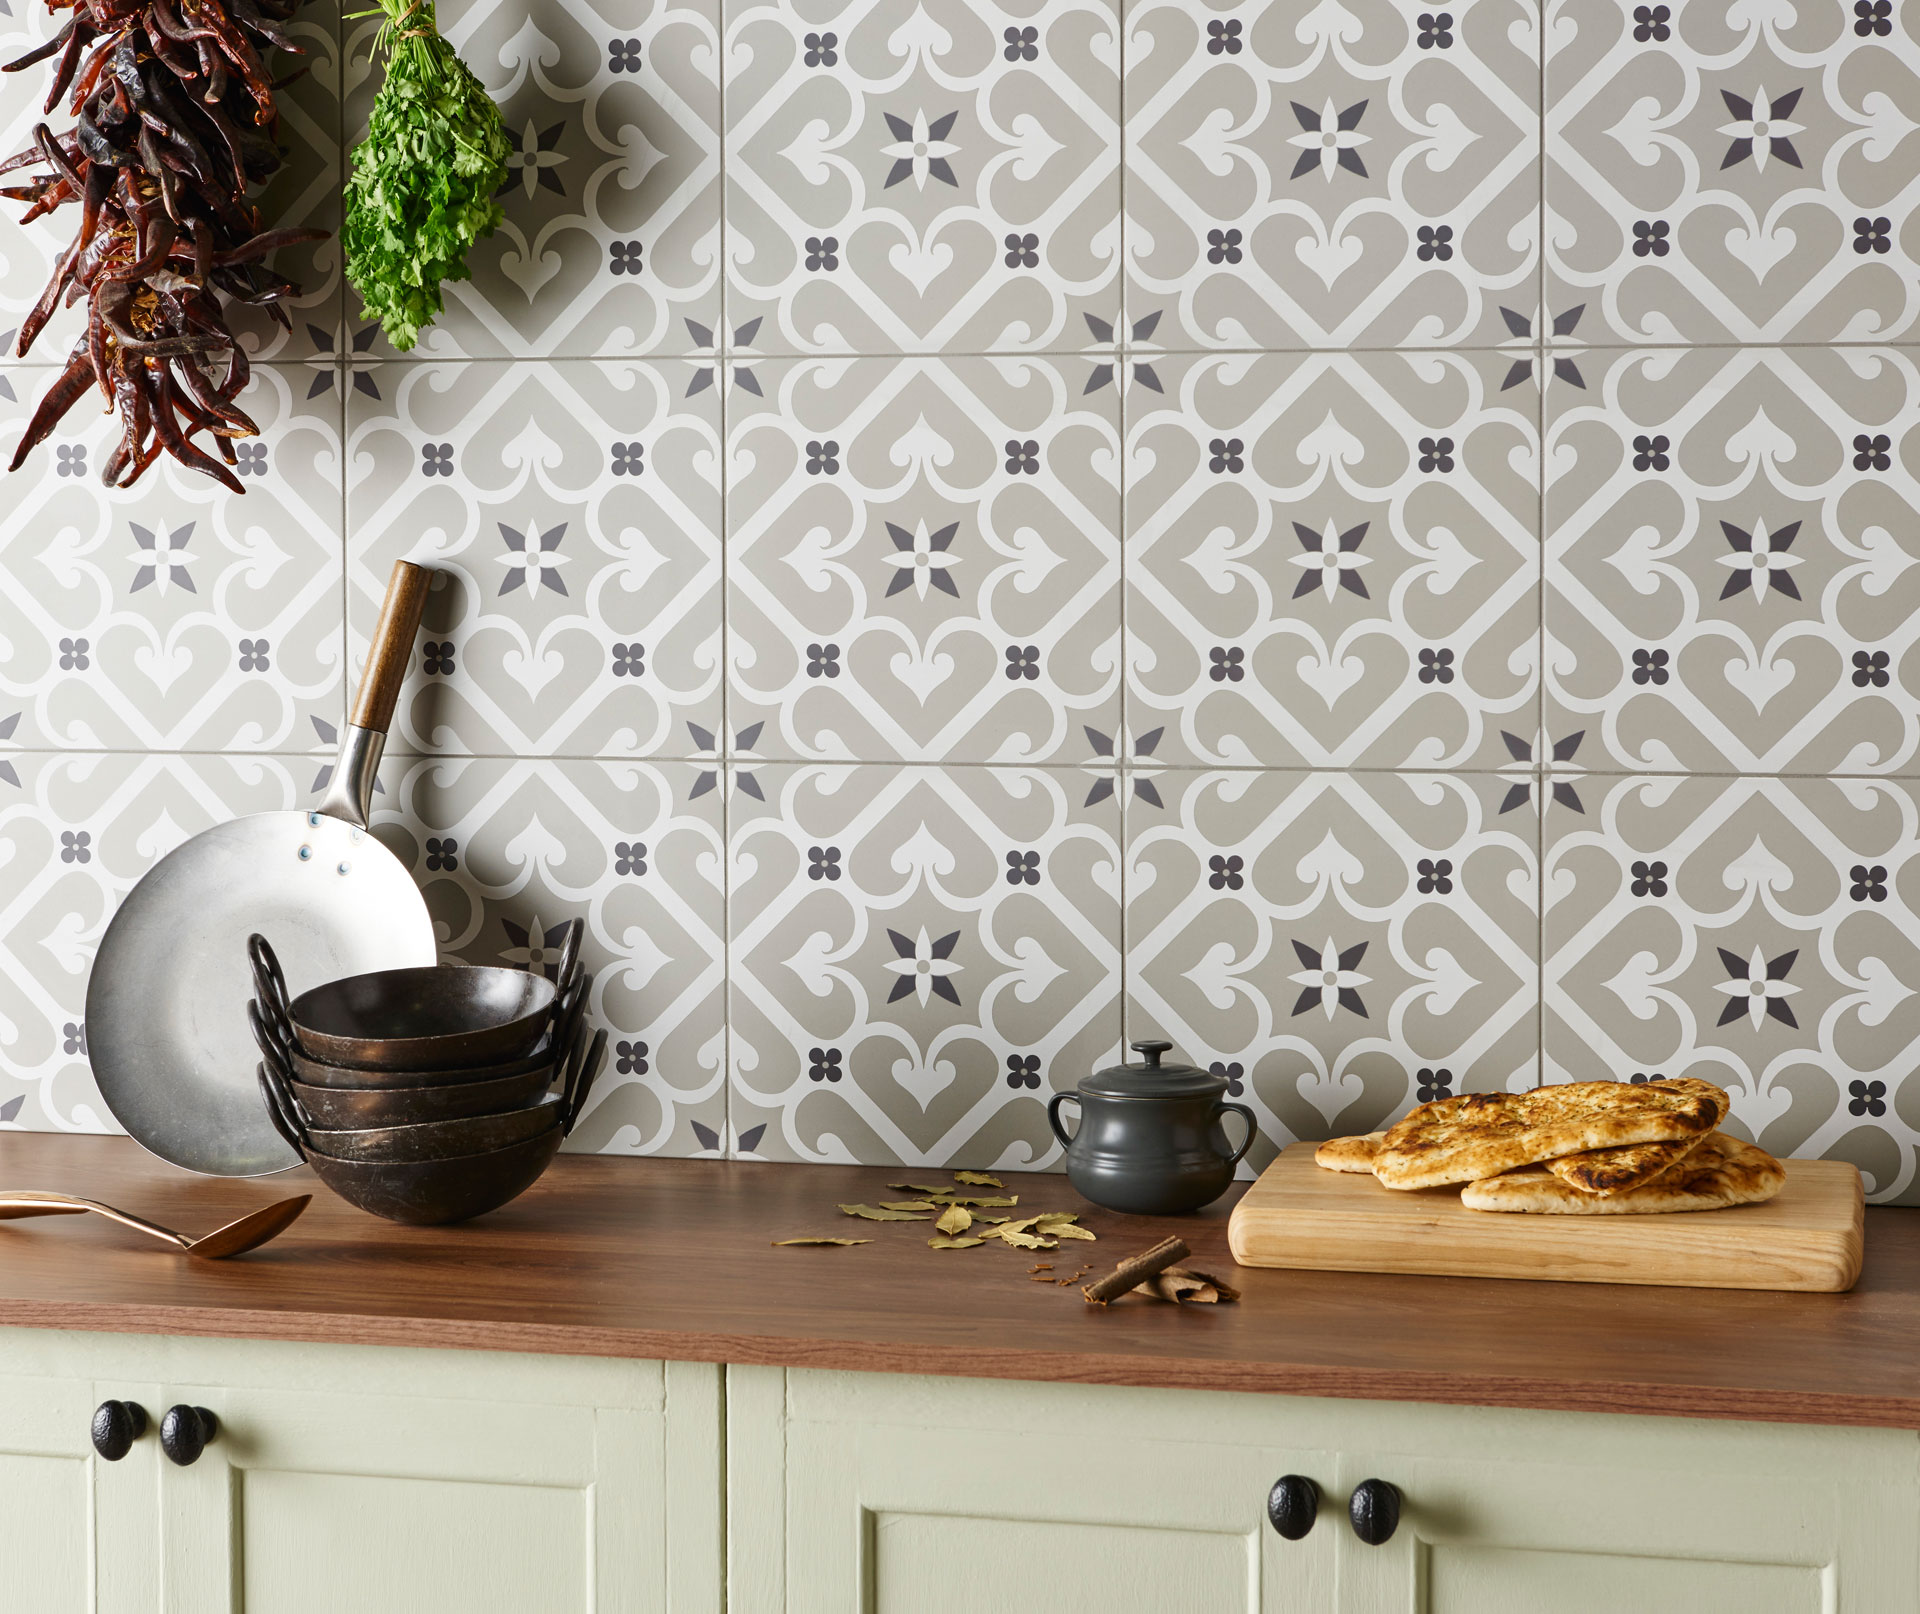 & Contemporary Kitchen Tiles